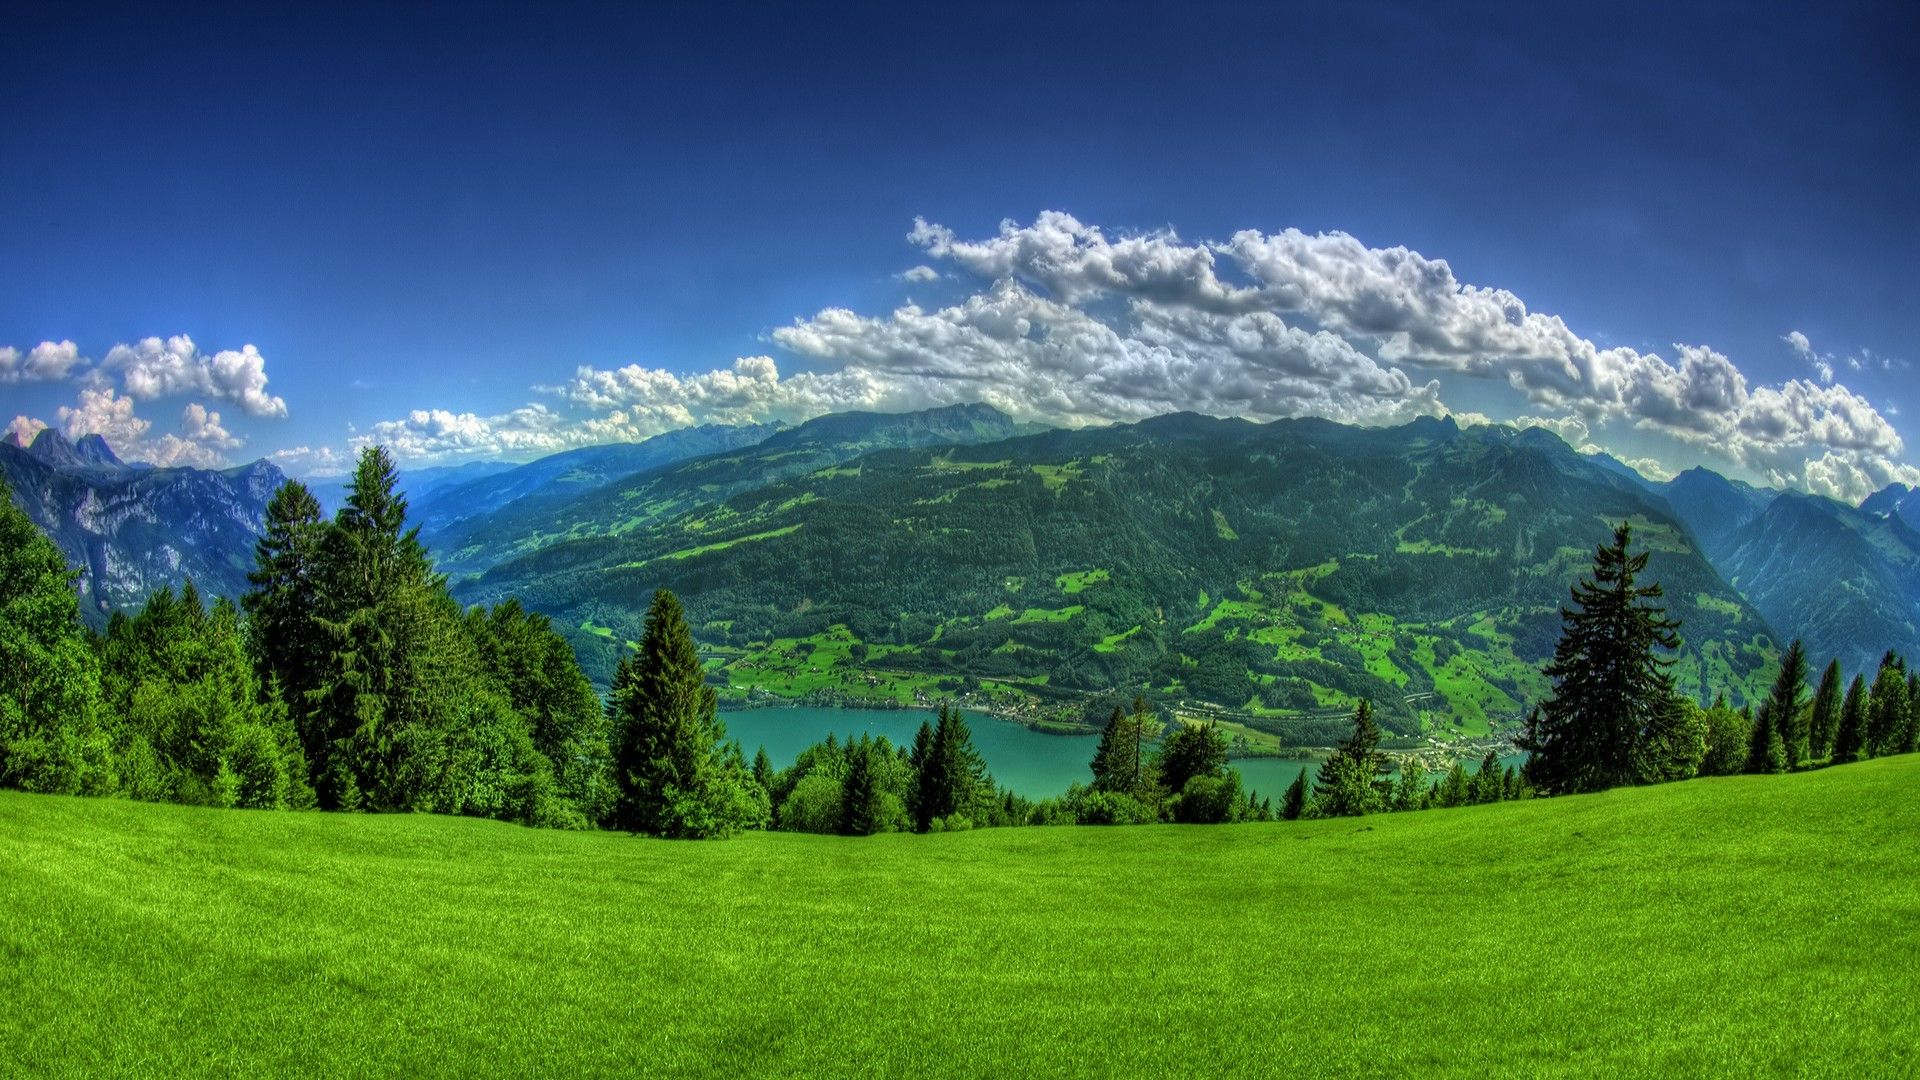 Full Hd Nature Wallpapers Free Download Full Hd Download High Definiton Wallpapers Desktop Beautiful Places In The World Green Landscape Hd Nature Wallpapers